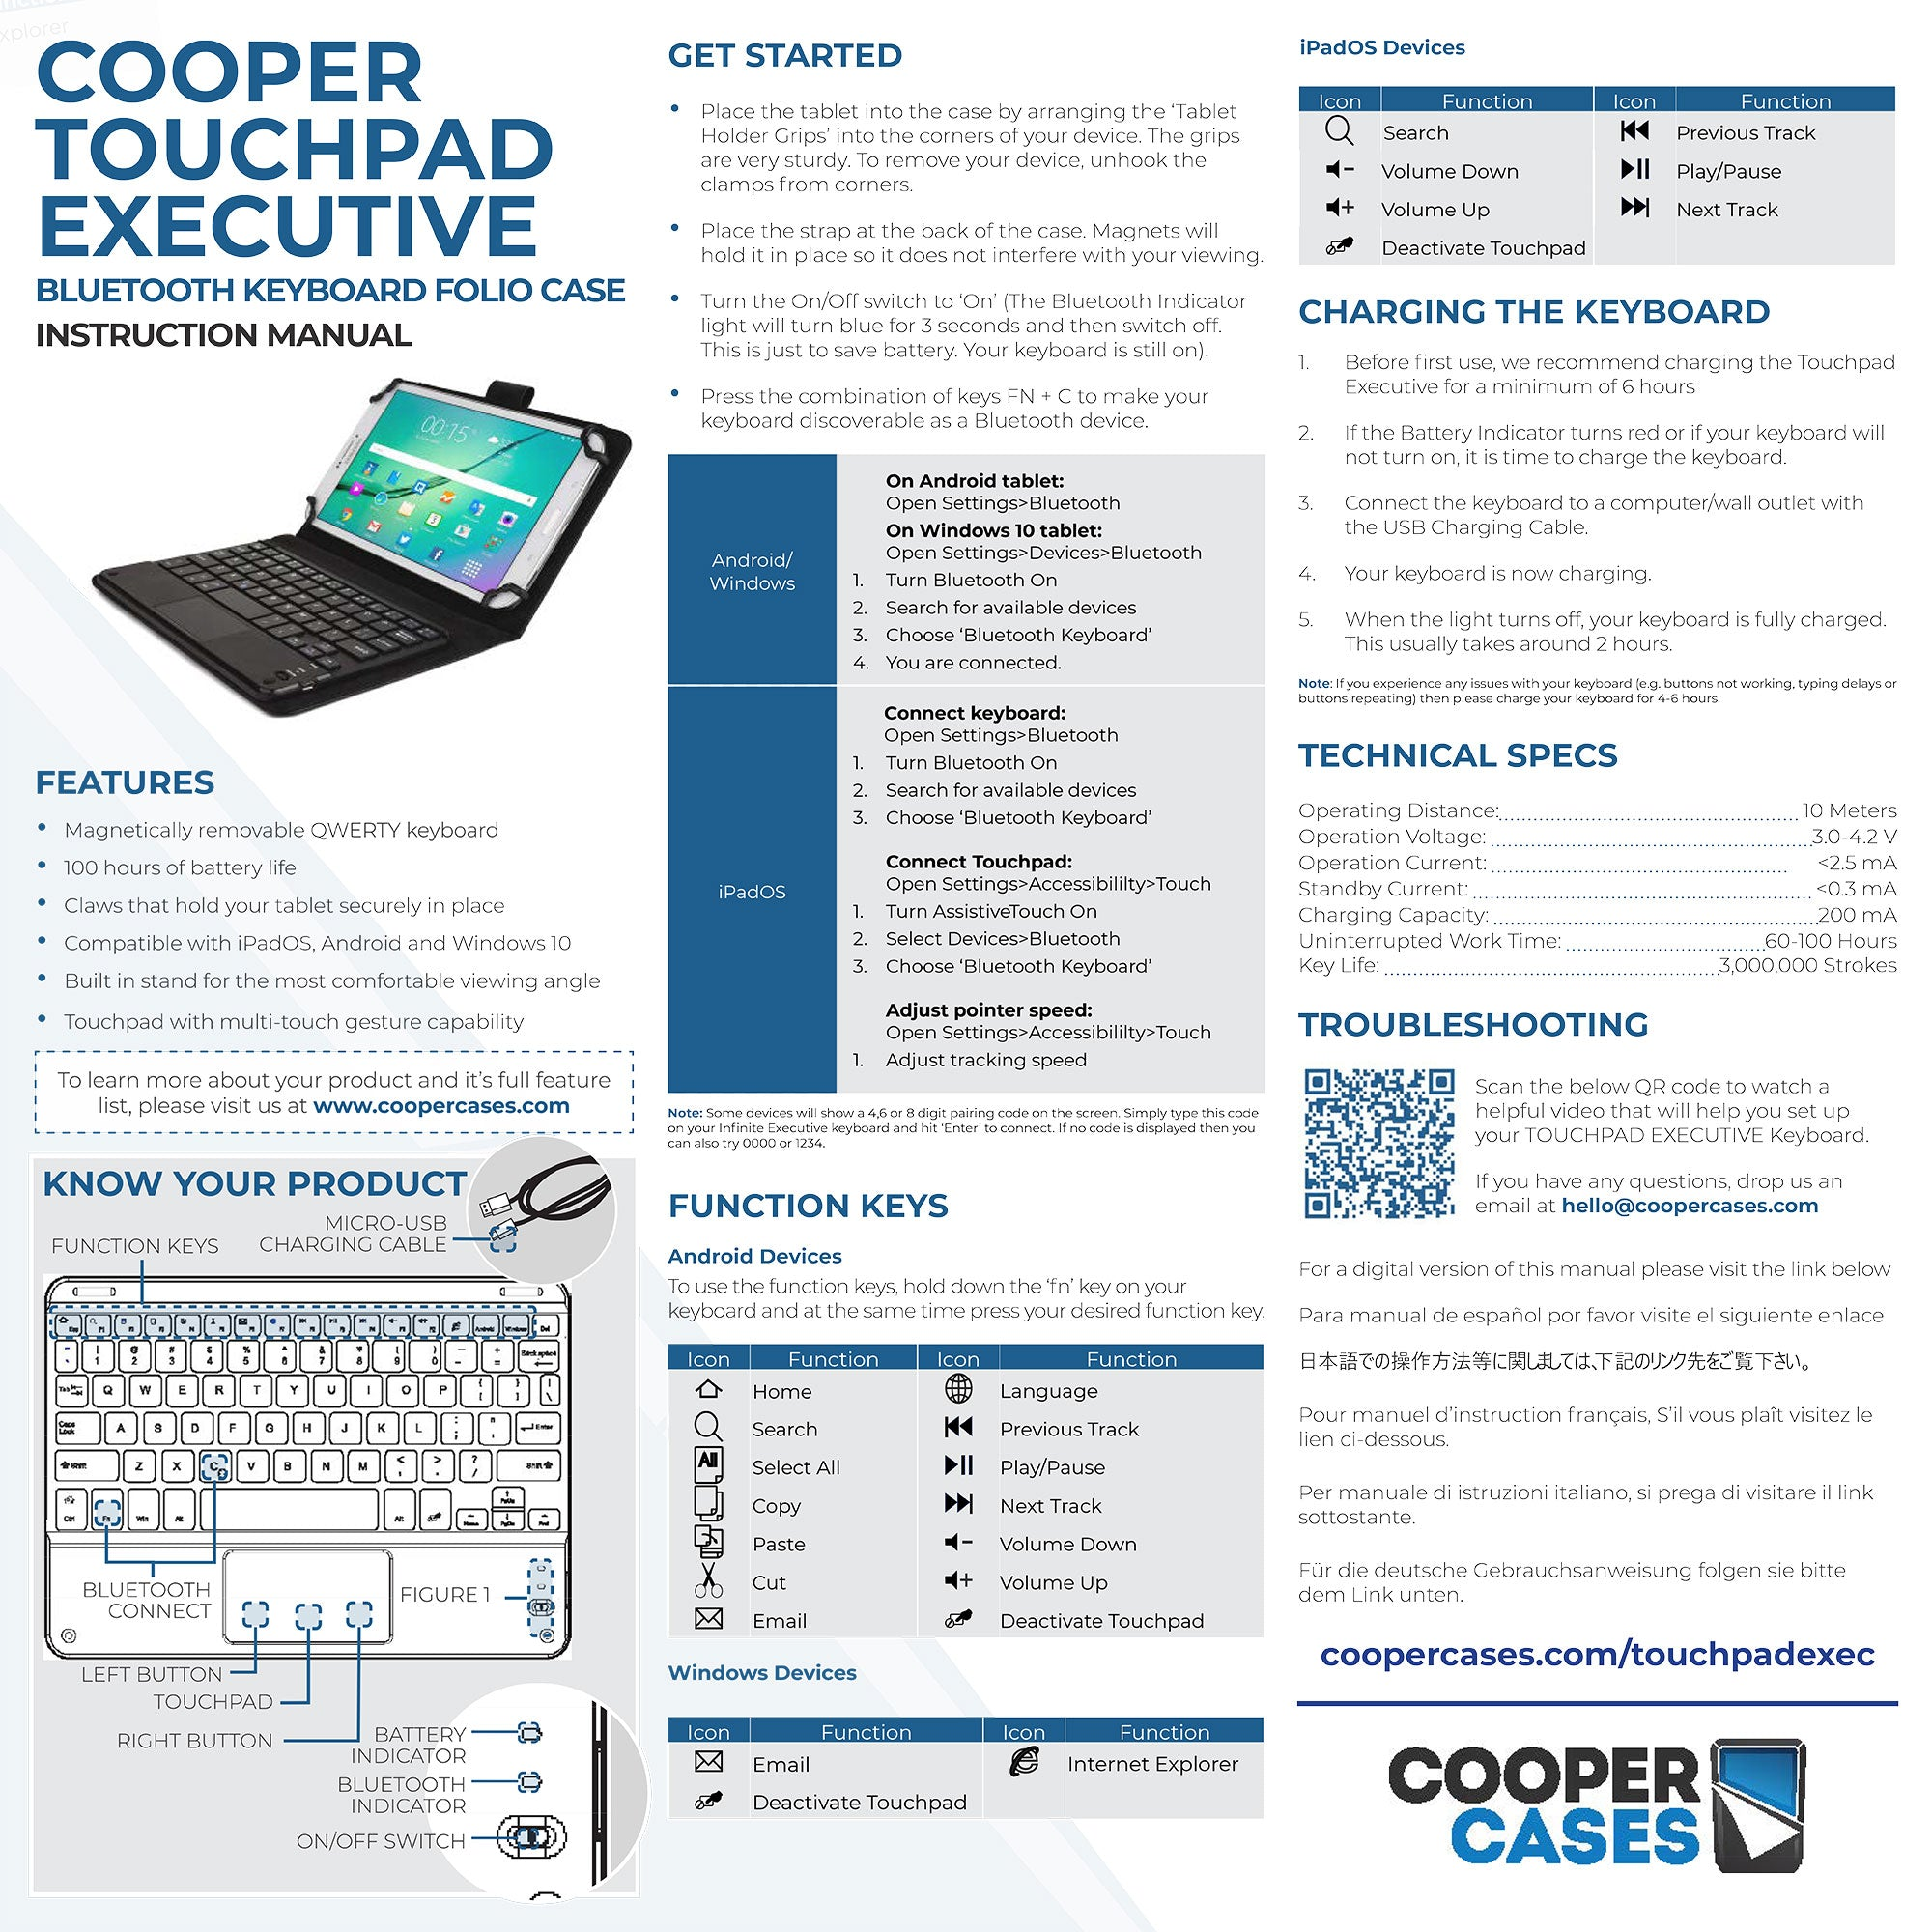 Cooper Touchpad Executive keyboard user manual